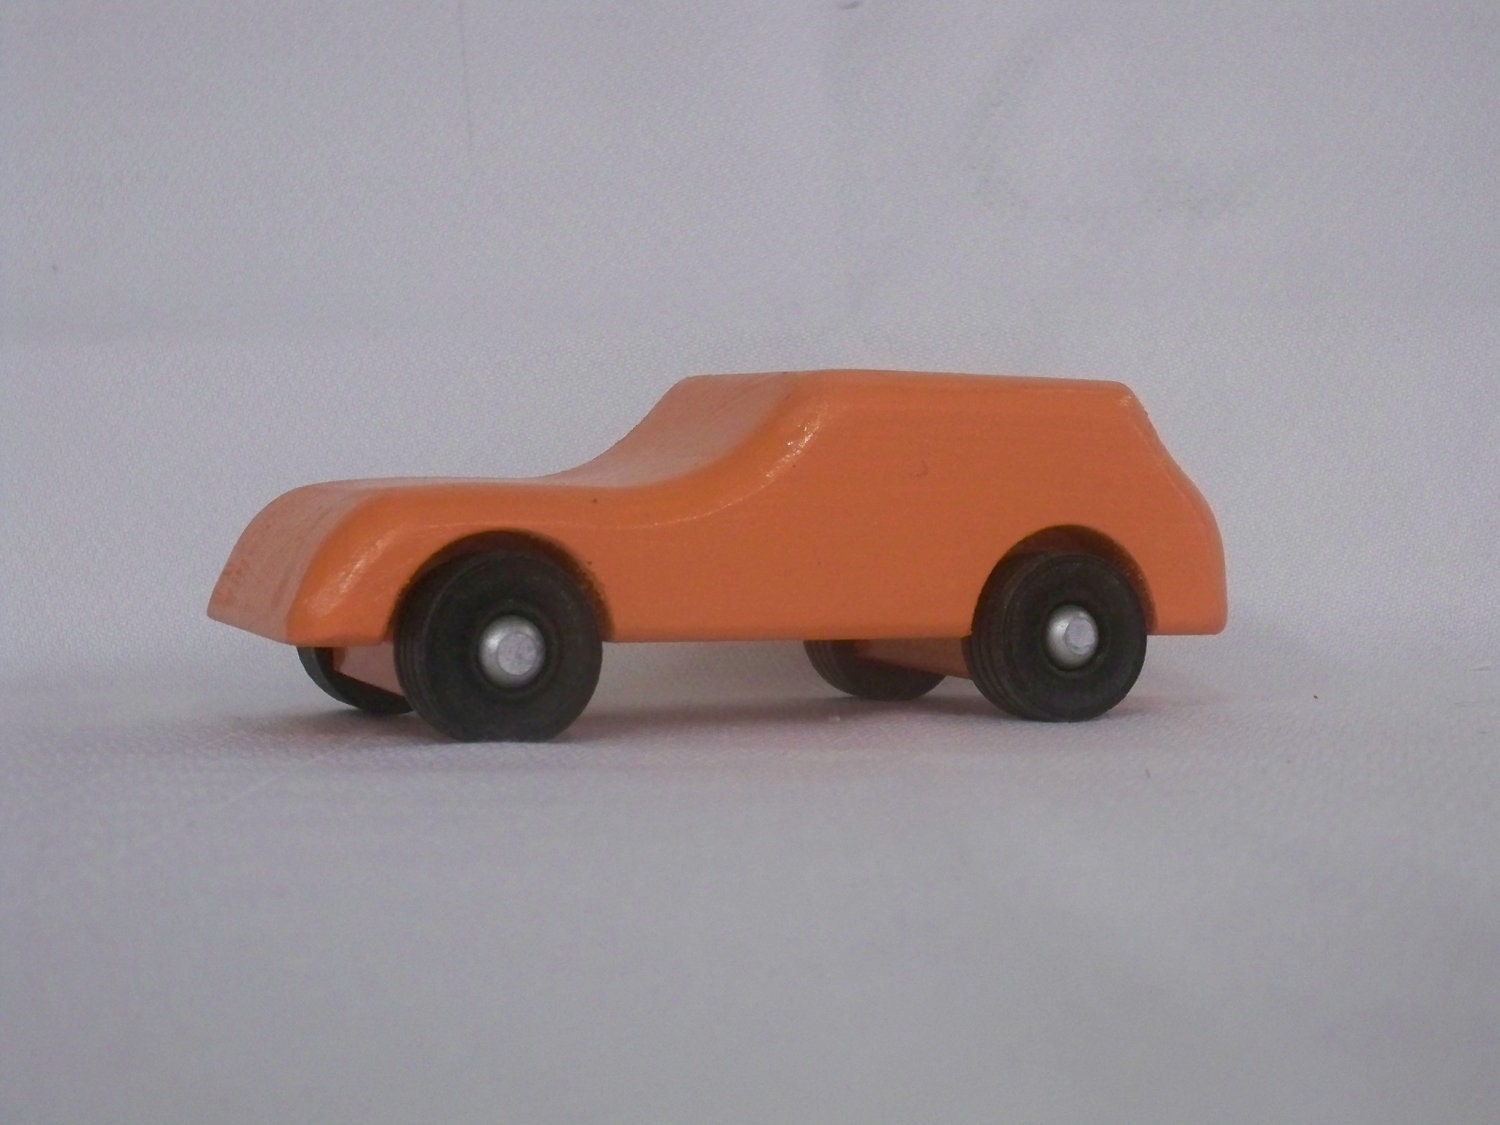 Wooden Toy Car Toy Car Classic Wood Toy Kids By